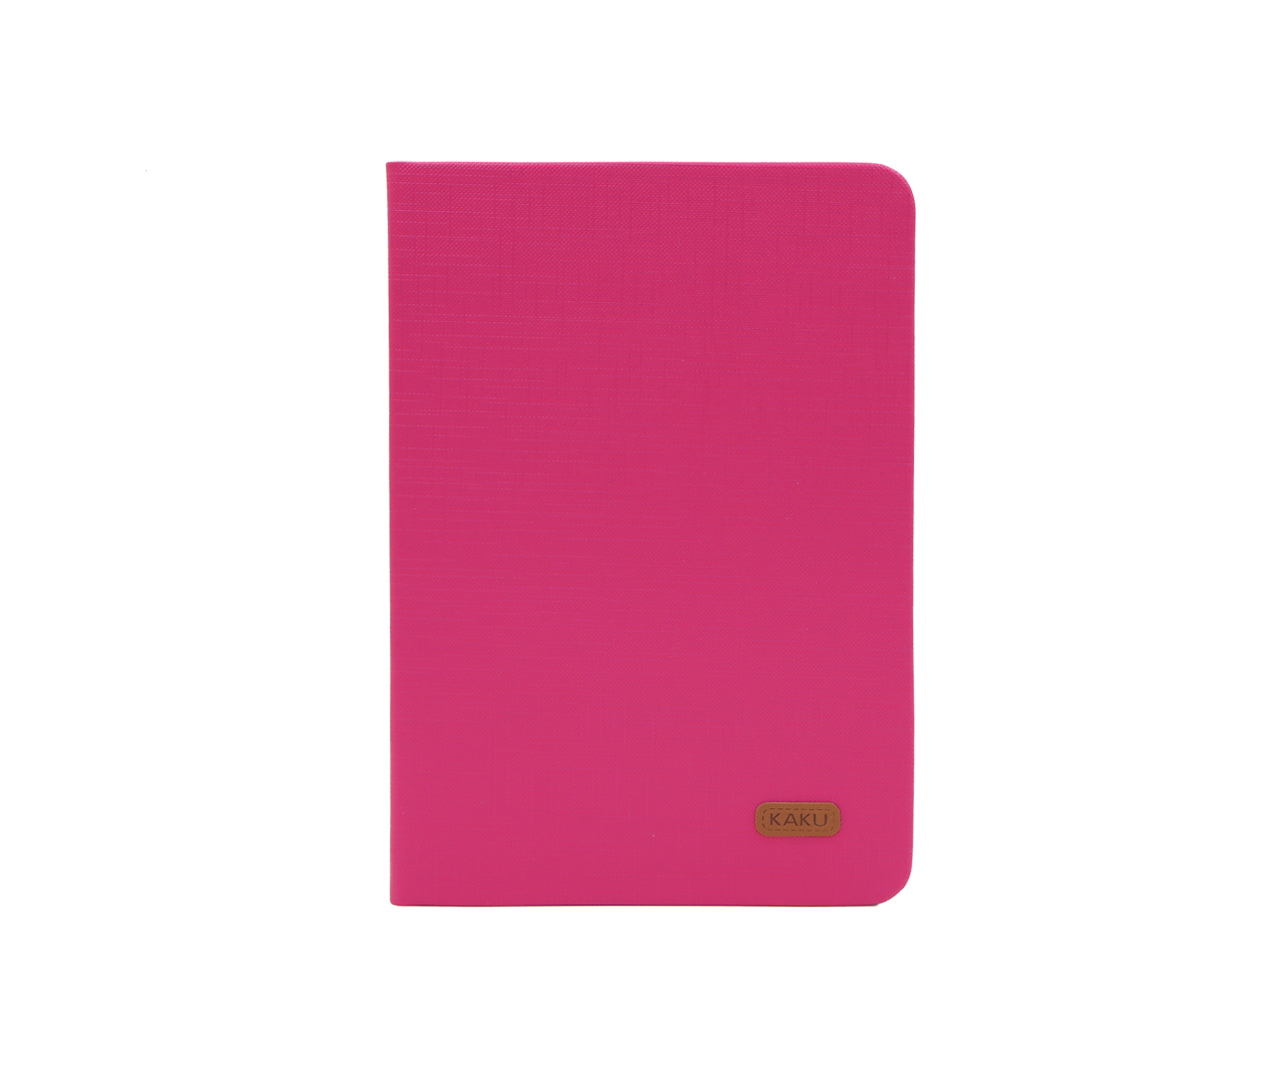 IKAKU Silk Series Flip Cover For Ipad Mini 2 / A1489 / A1490 / A1491 (Pink)